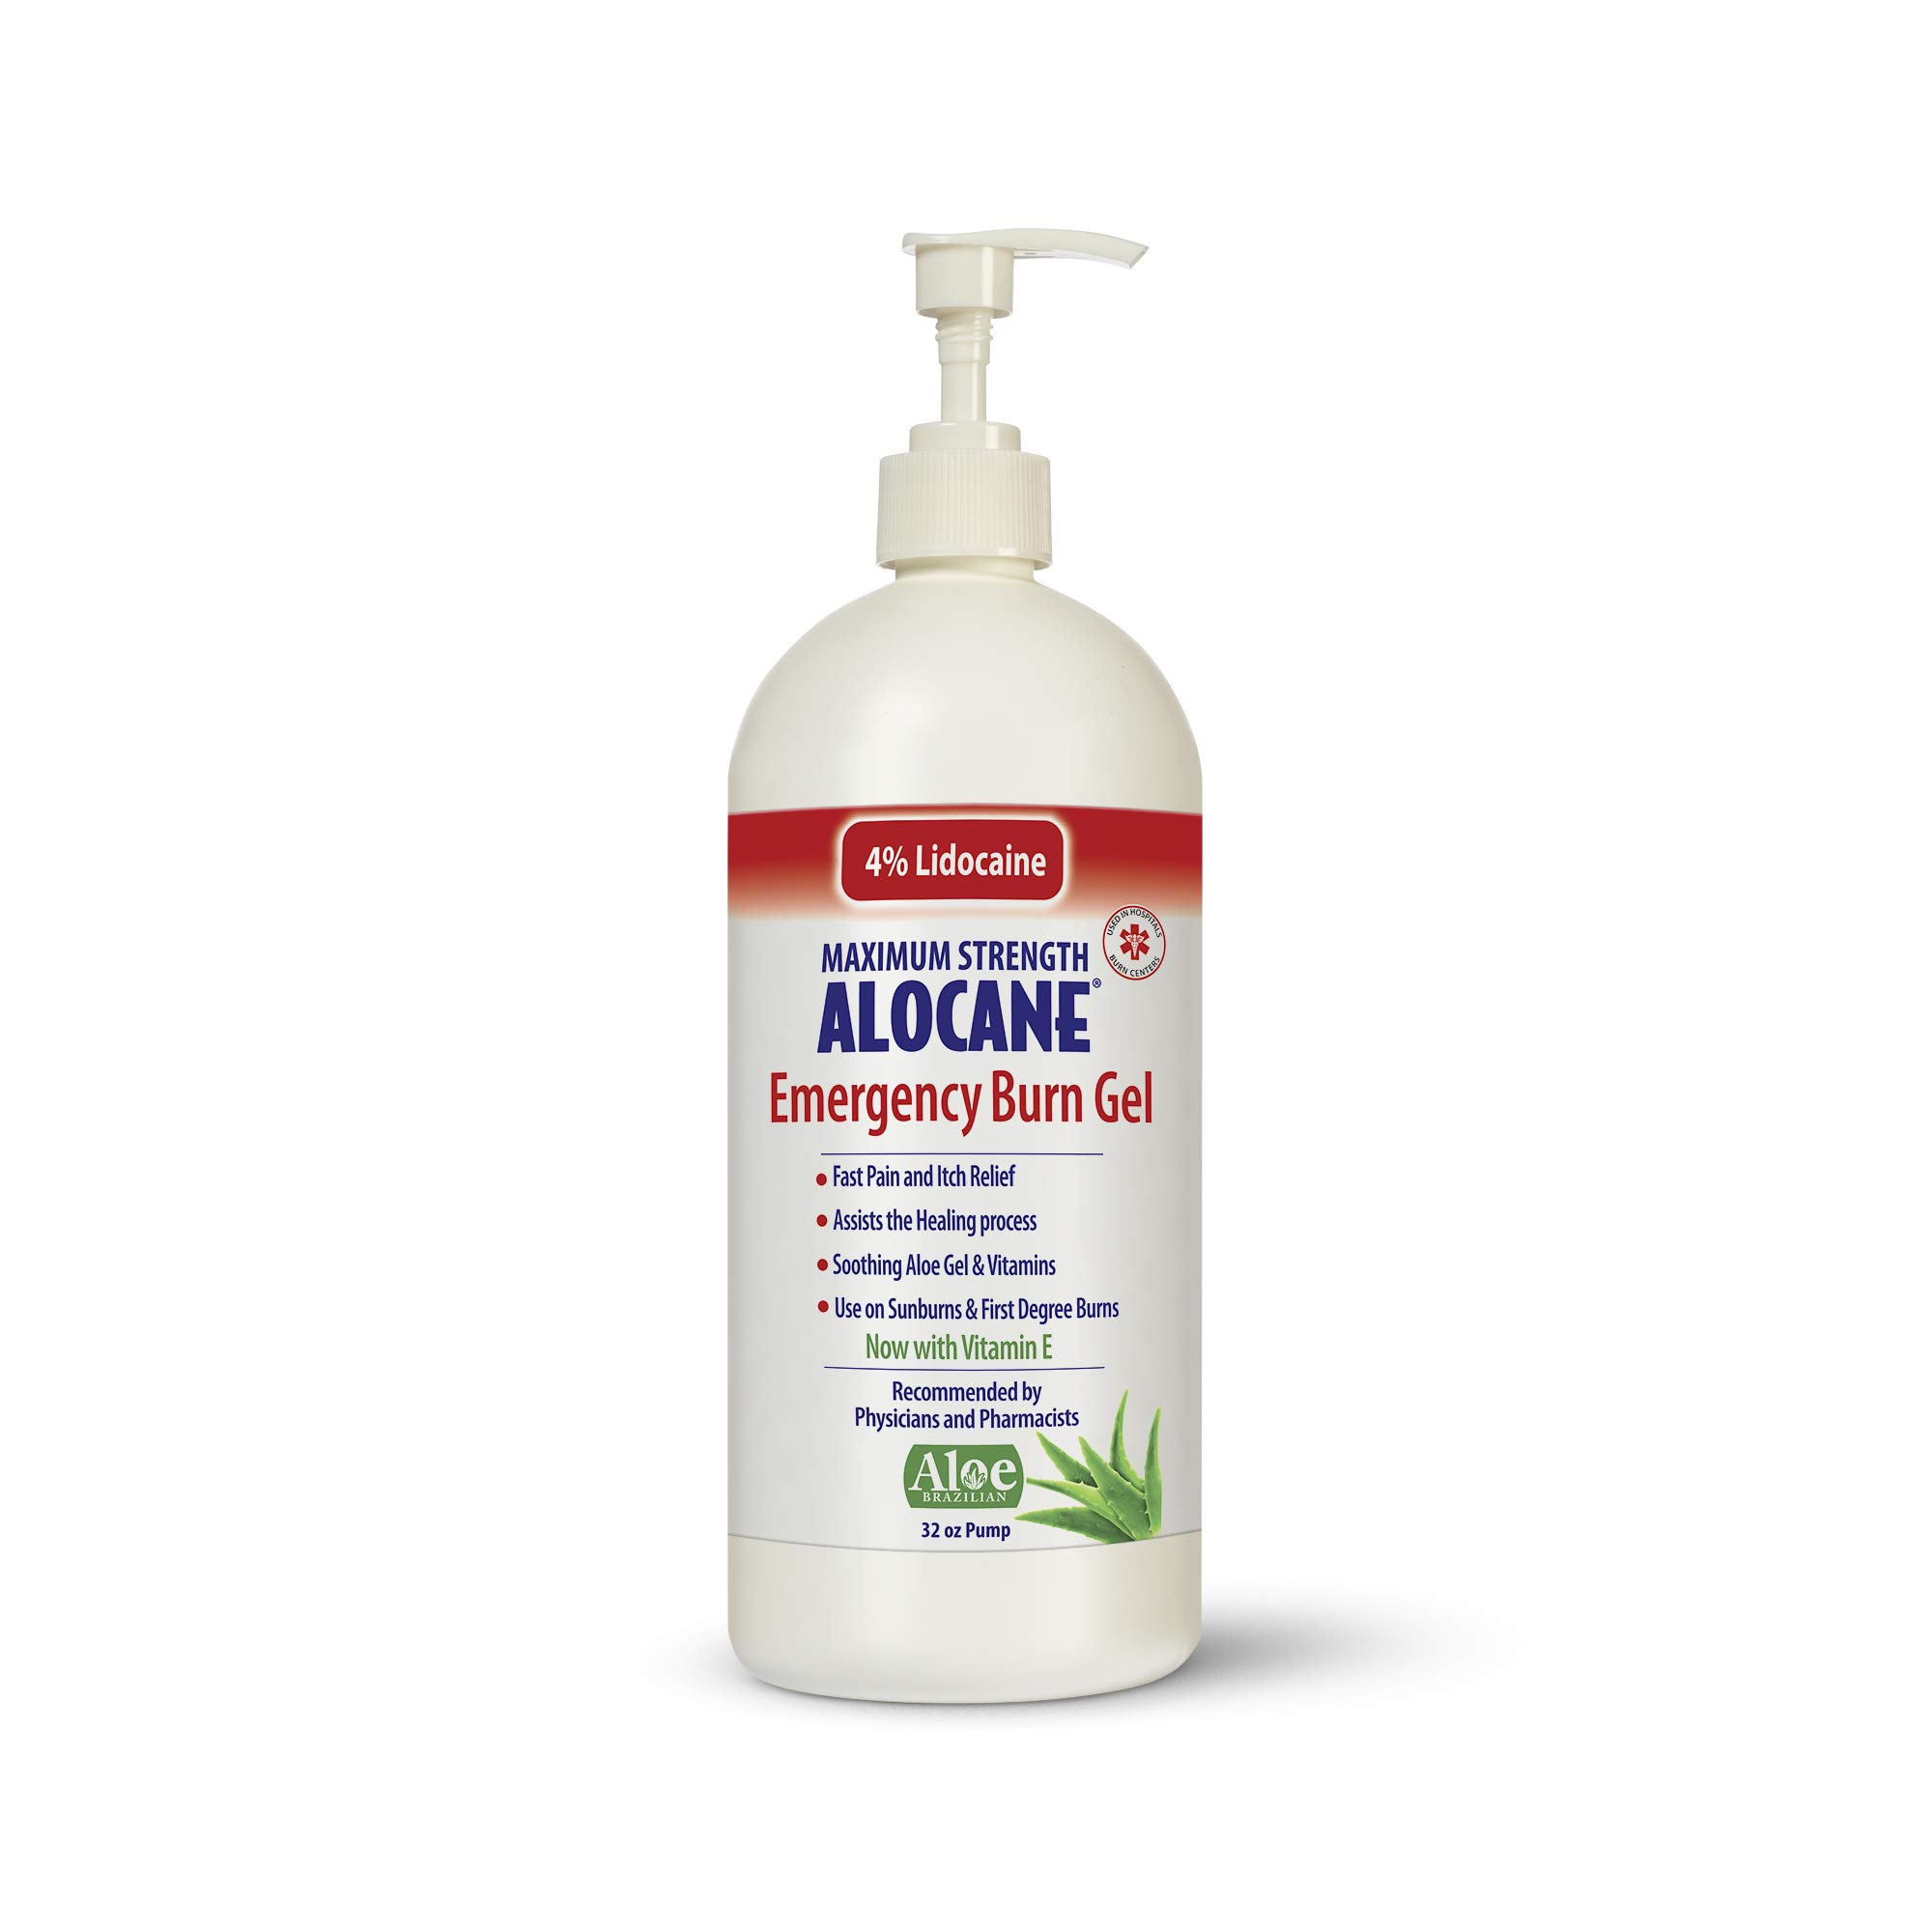 Alocane Maximum Strength 4% Lidocaine Emergency Burn Gel Pump, Commercial Grade, Aloe Vera, Vitamin E, Great for Restaurants and Other Heat Related Work environments, 32 Ounce by Alocane